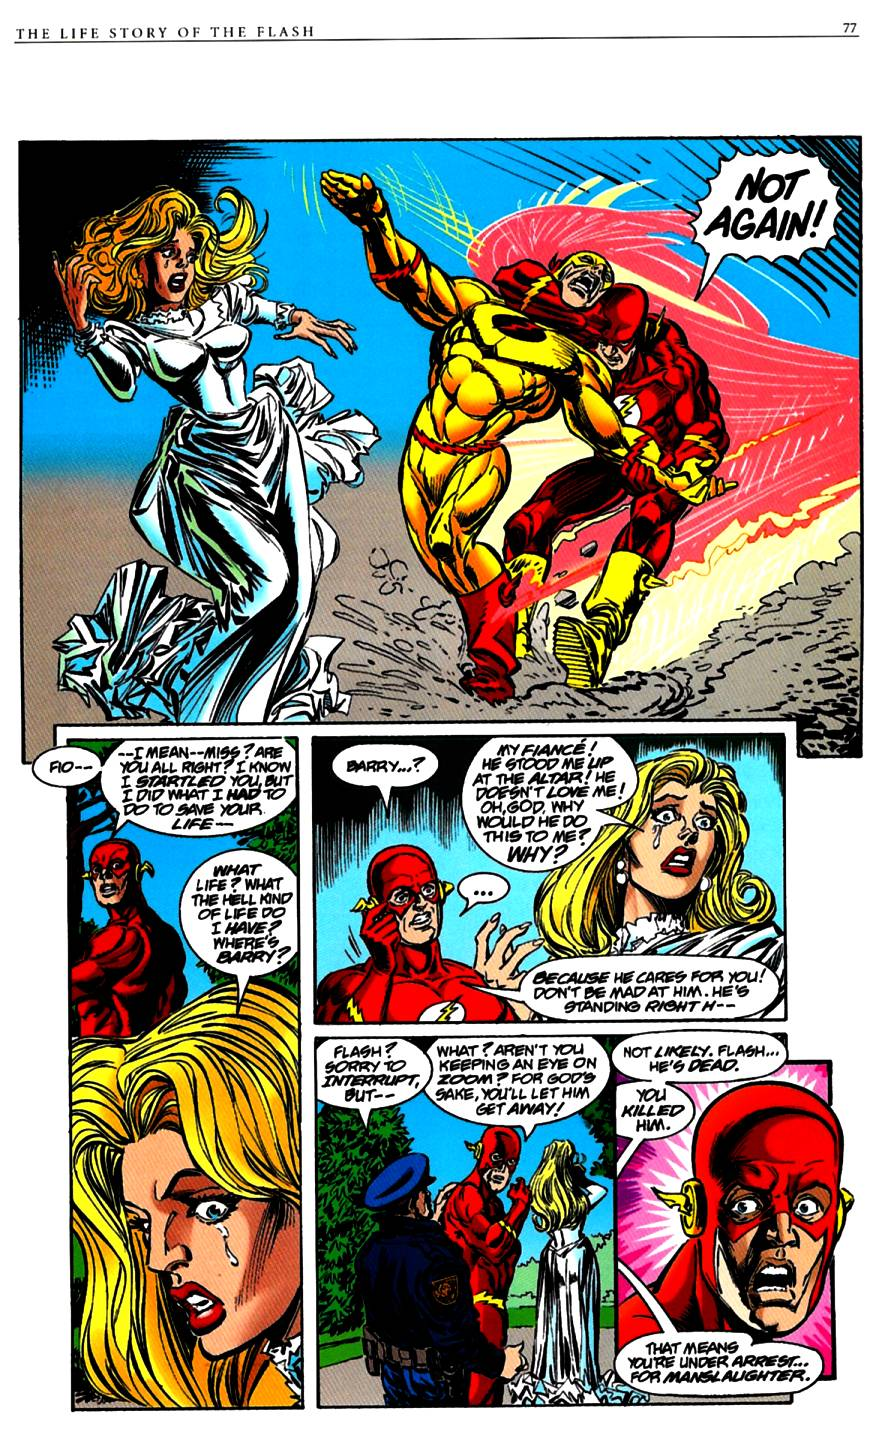 Read online The Life Story of the Flash comic -  Issue # Full - 79